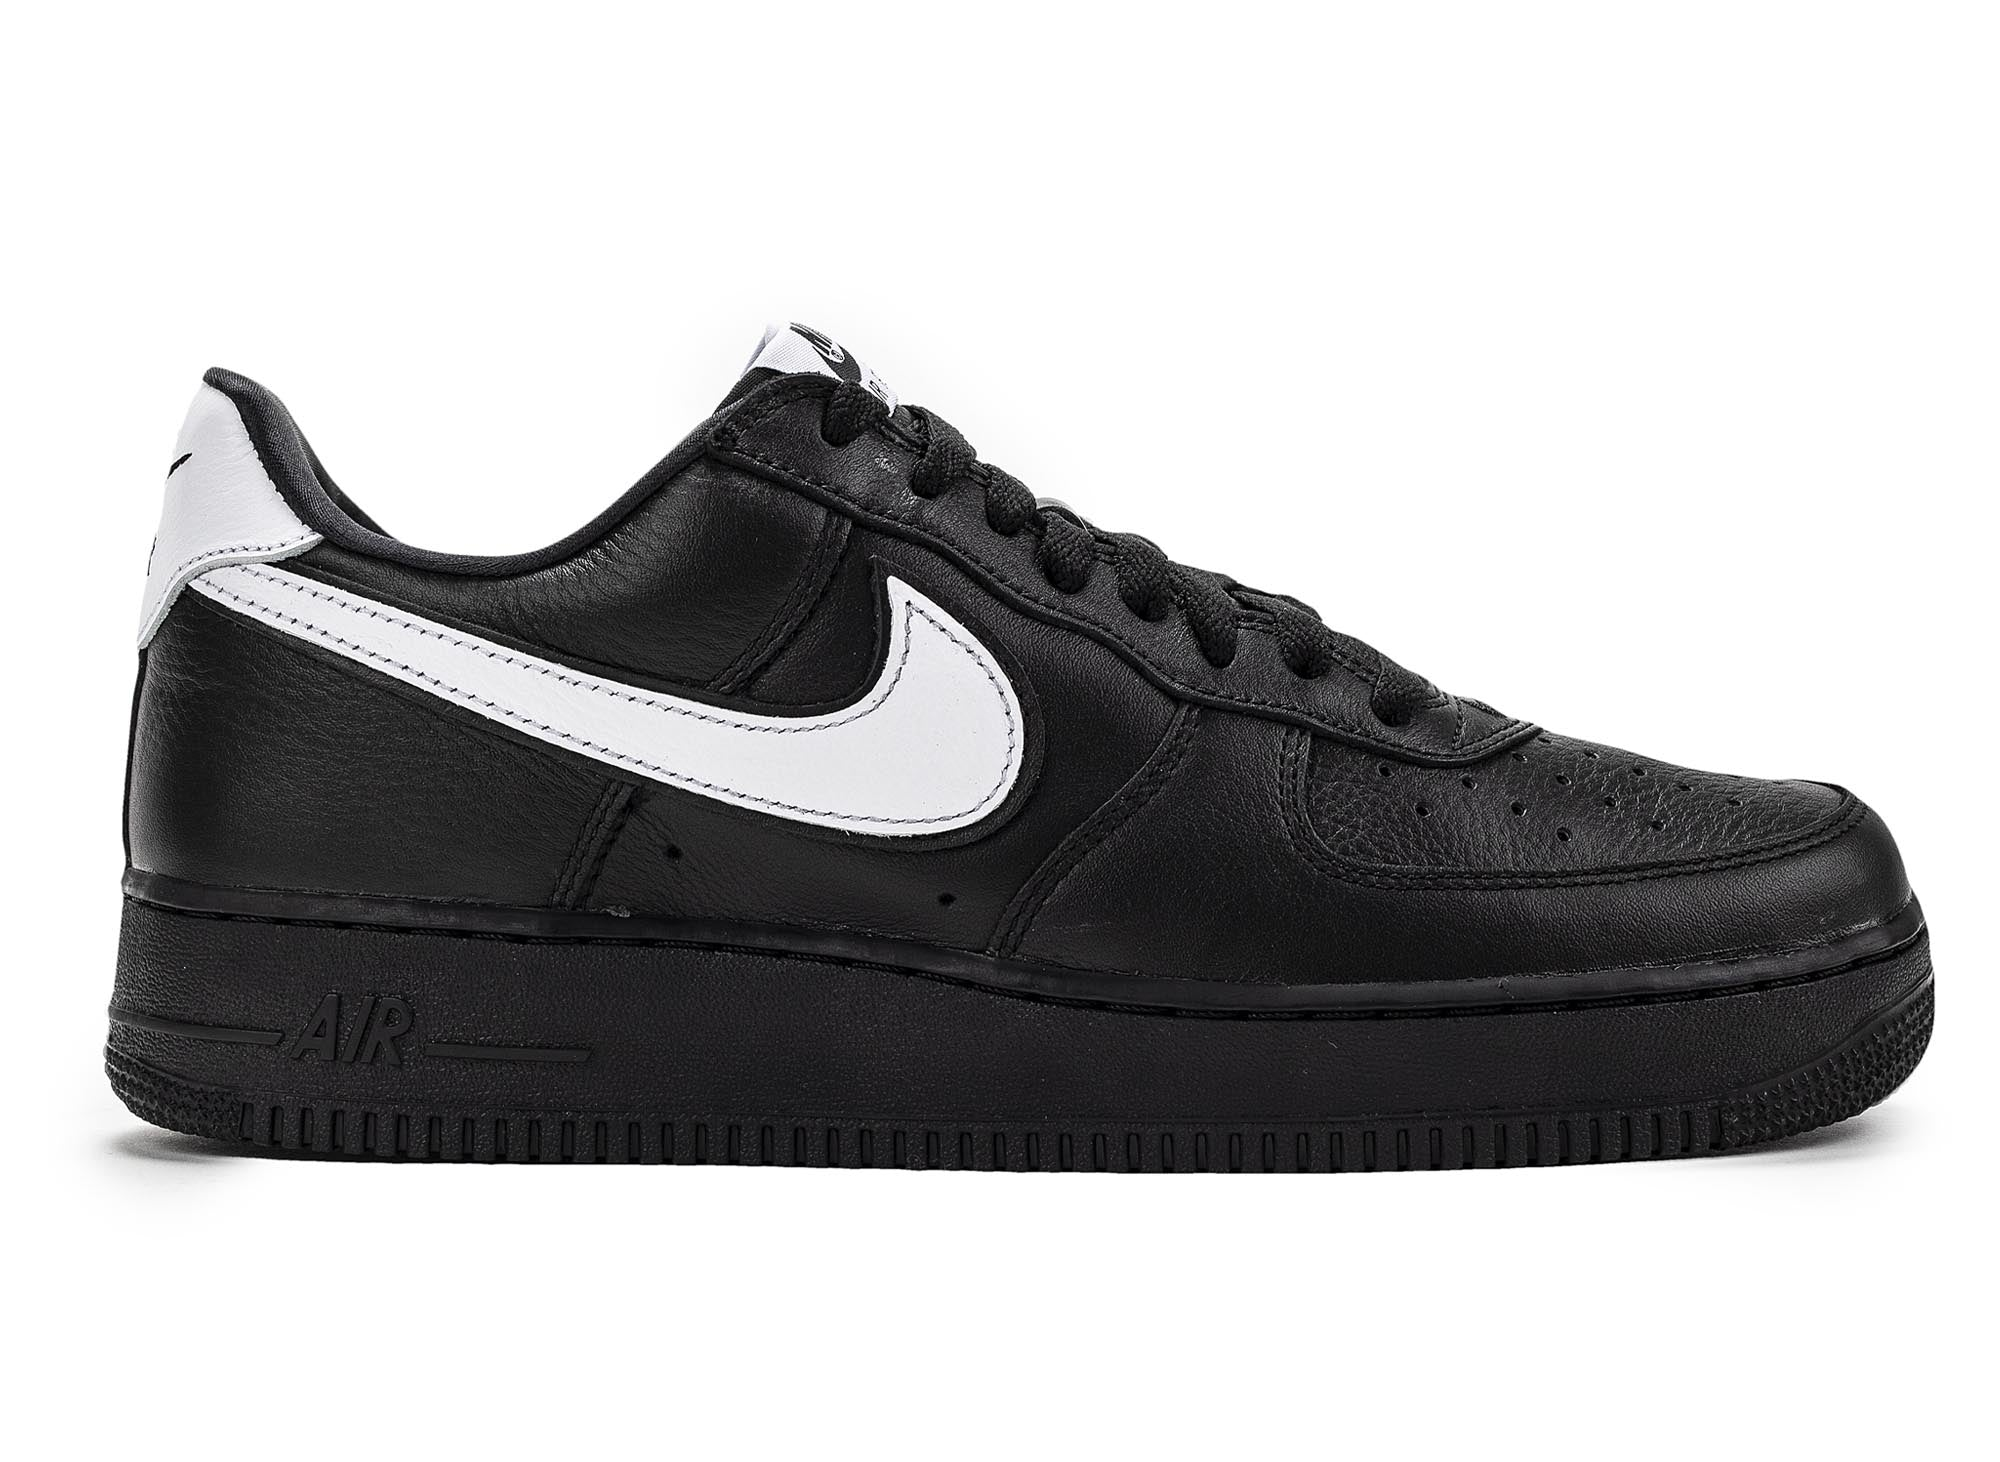 Air Force 1 Low Retro QS 'Black & White'